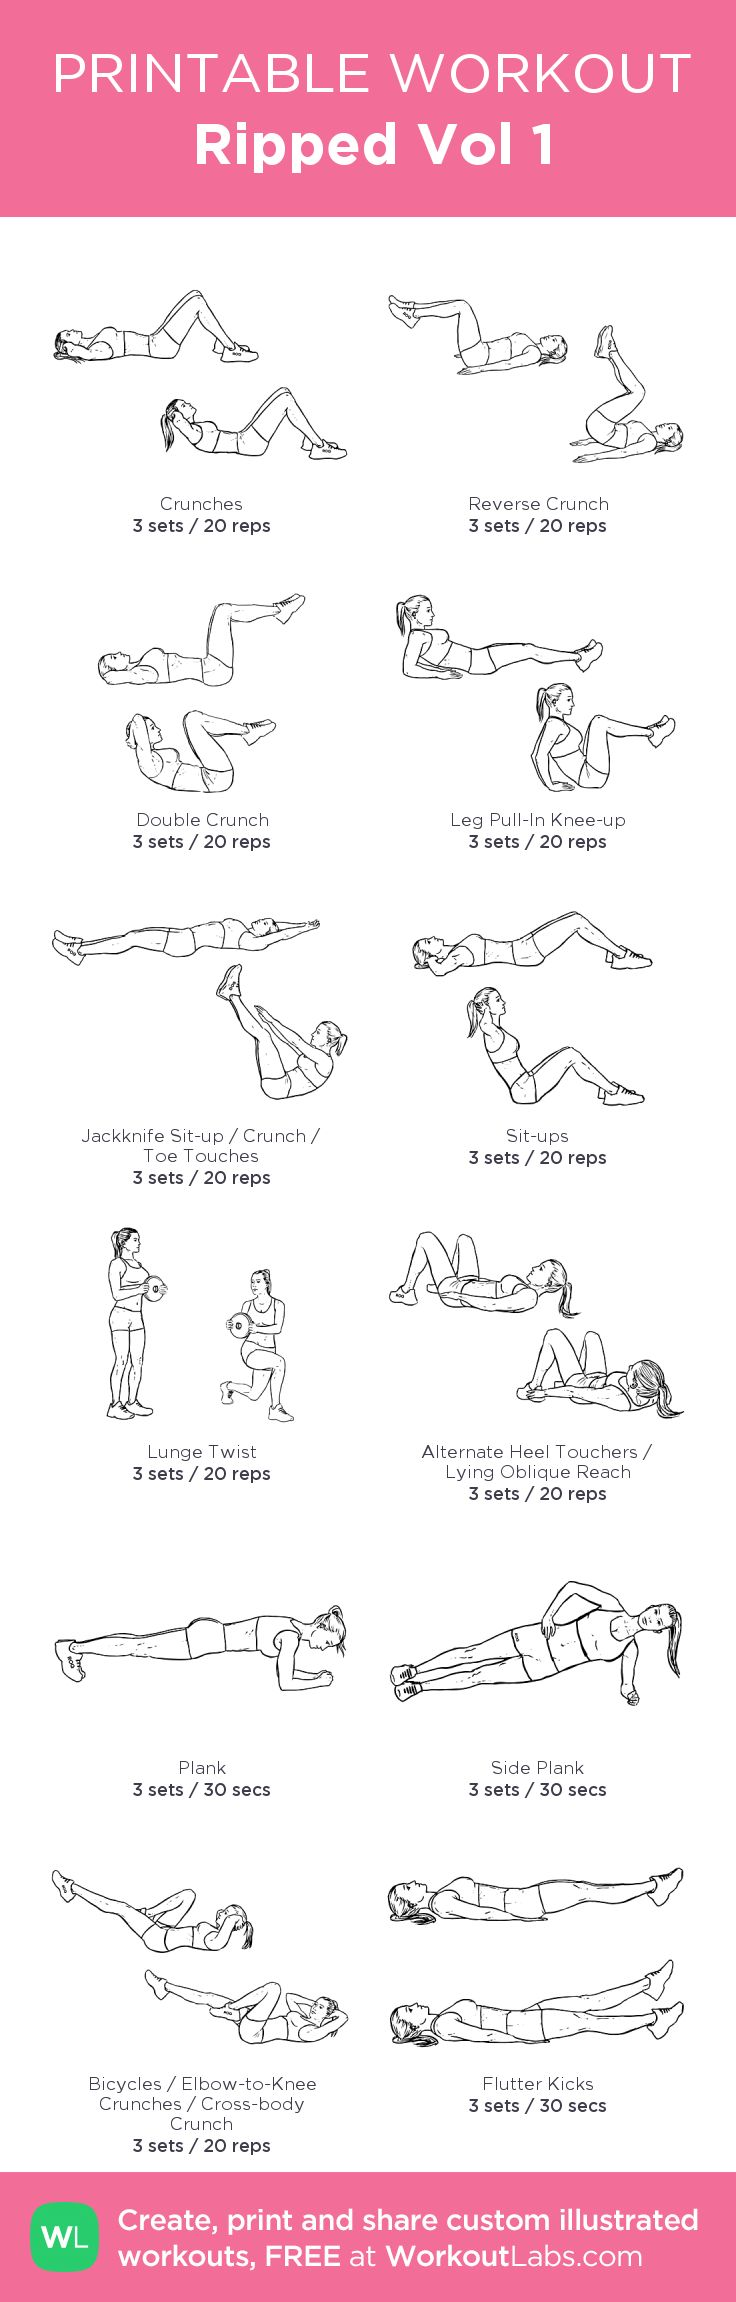 Ripped Vol 1: my visual workout created at WorkoutLabs.com • Click through to customize and download as a FREE PDF! #customworkout